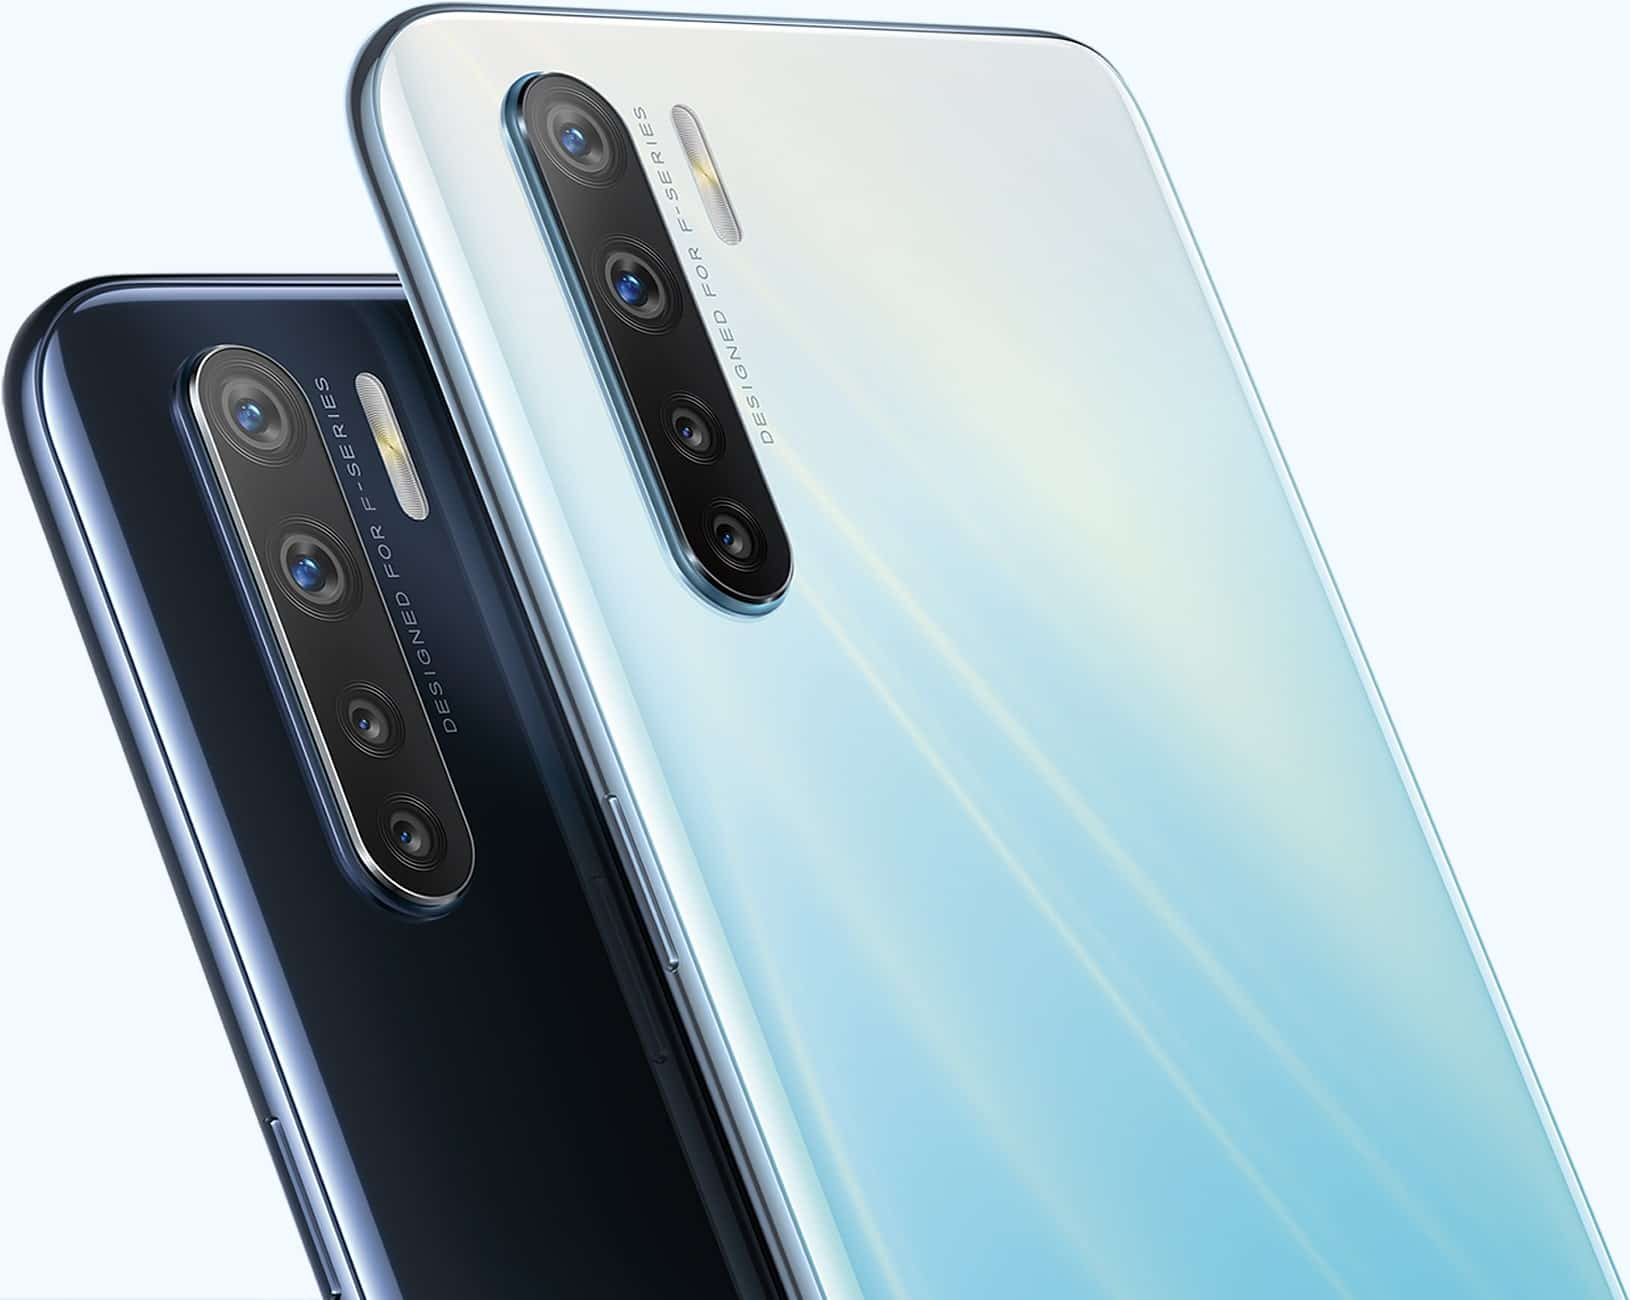 Oppo F15 July 2020 Security Patch Update Based On ColorOS 7.1 Brings New Android Security Patch, Improved System Stability, & Much More [CPH2001EX_11_C.09] - Realme Updates